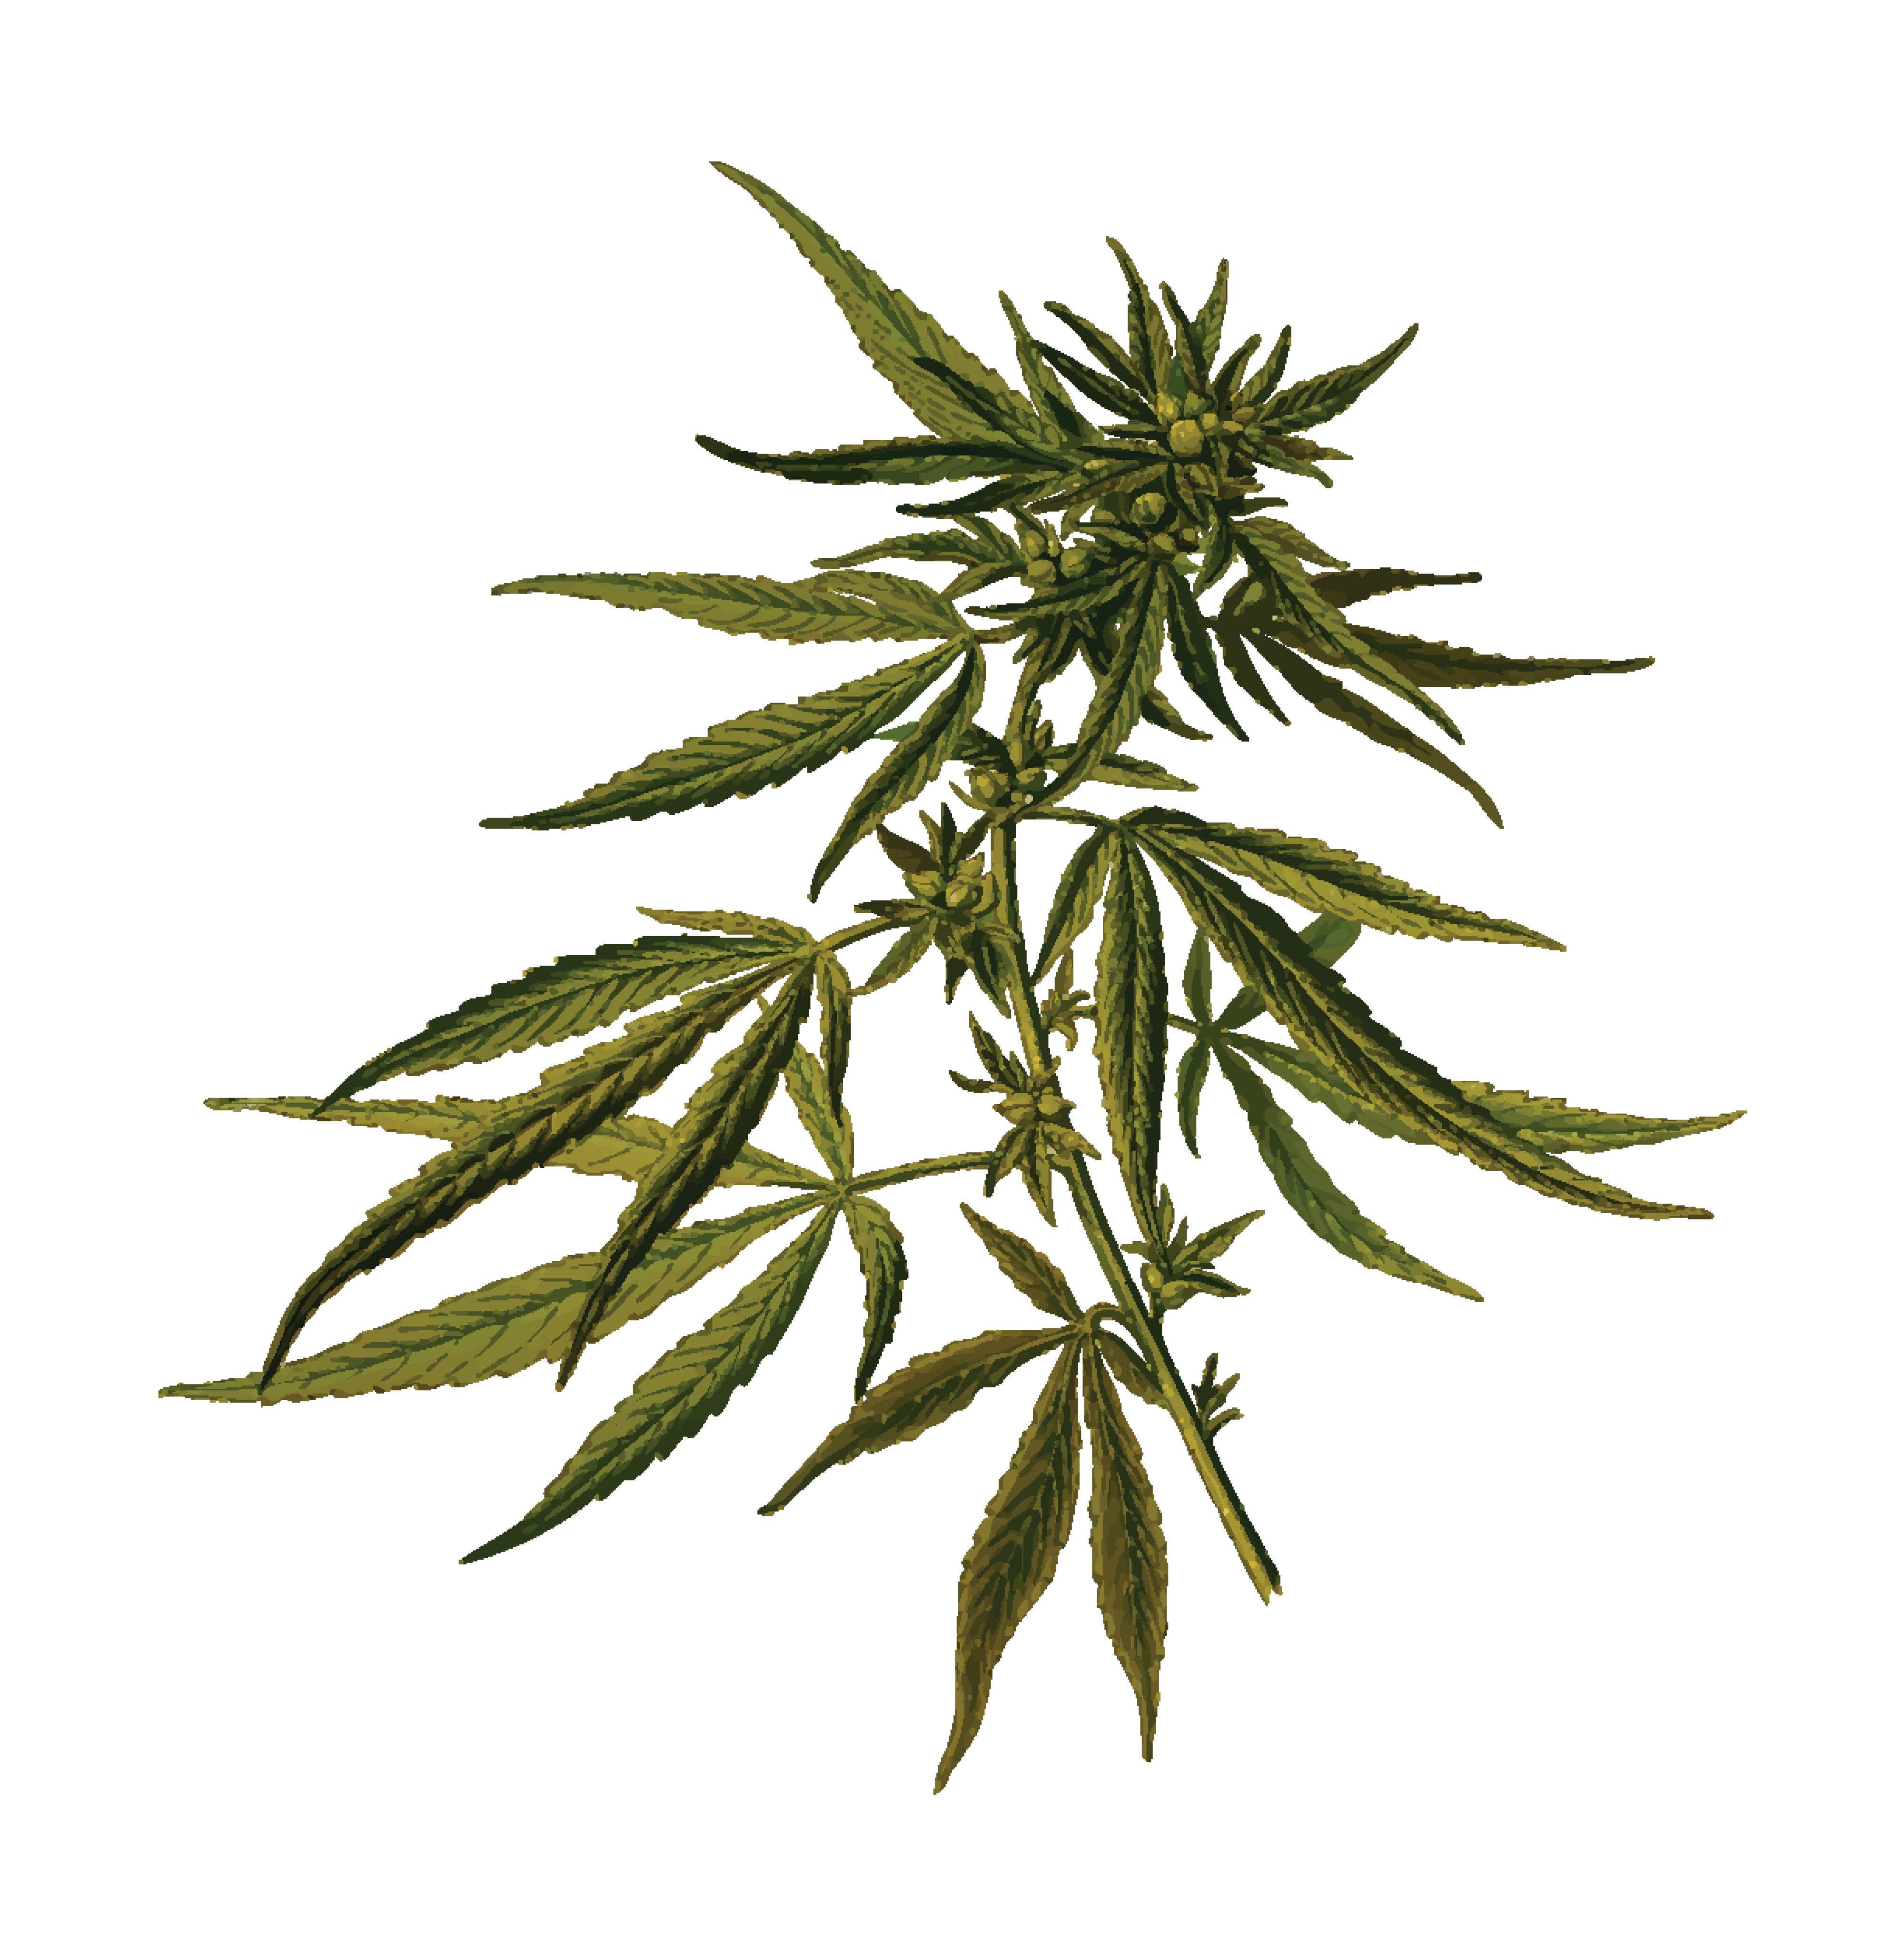 Free Clipart Of A cannabis plant.